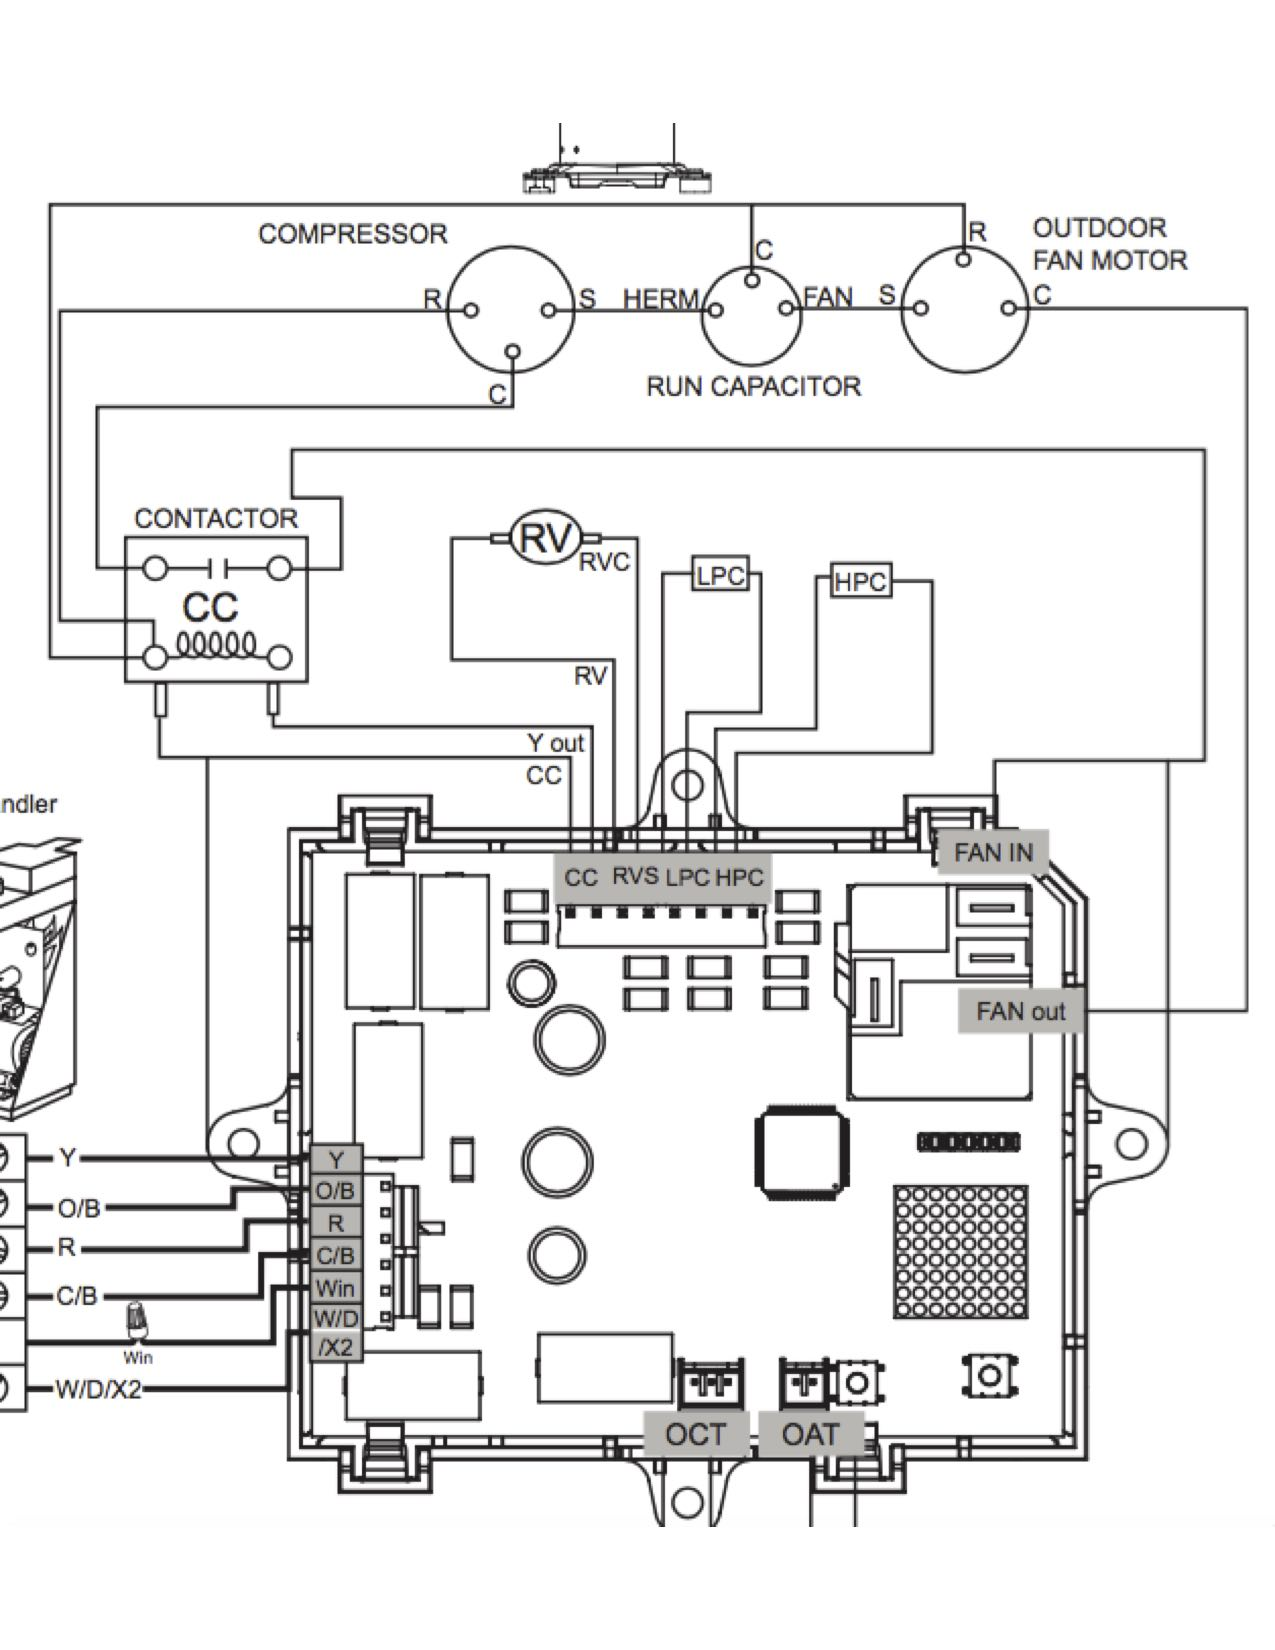 [DIAGRAM] Goodman Heat Pump Defrost Control Board Wiring